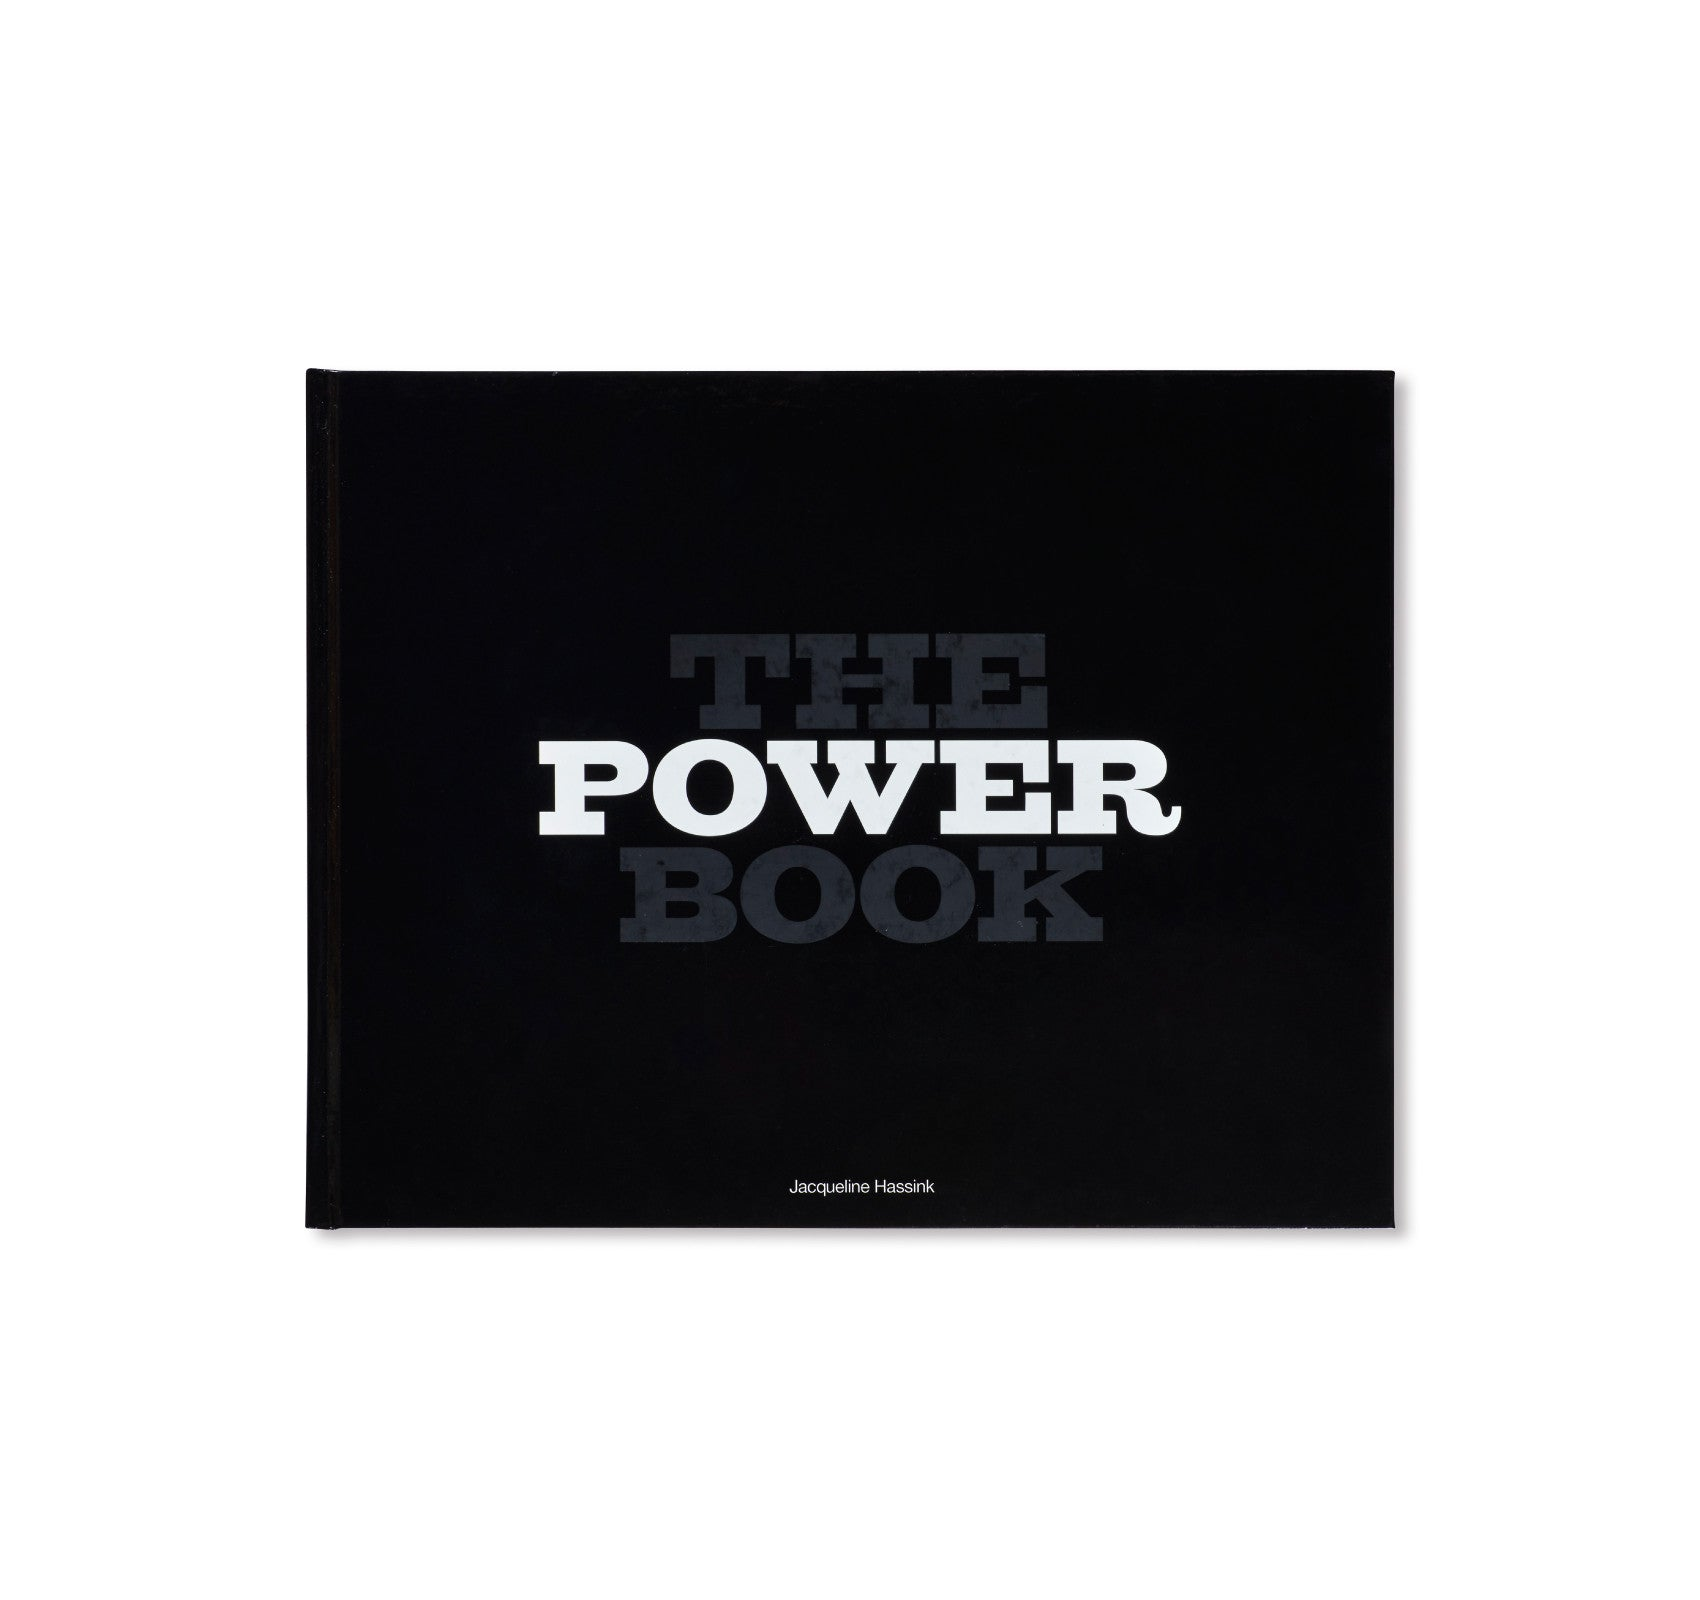 THE POWER BOOK by Jacqueline Hassink